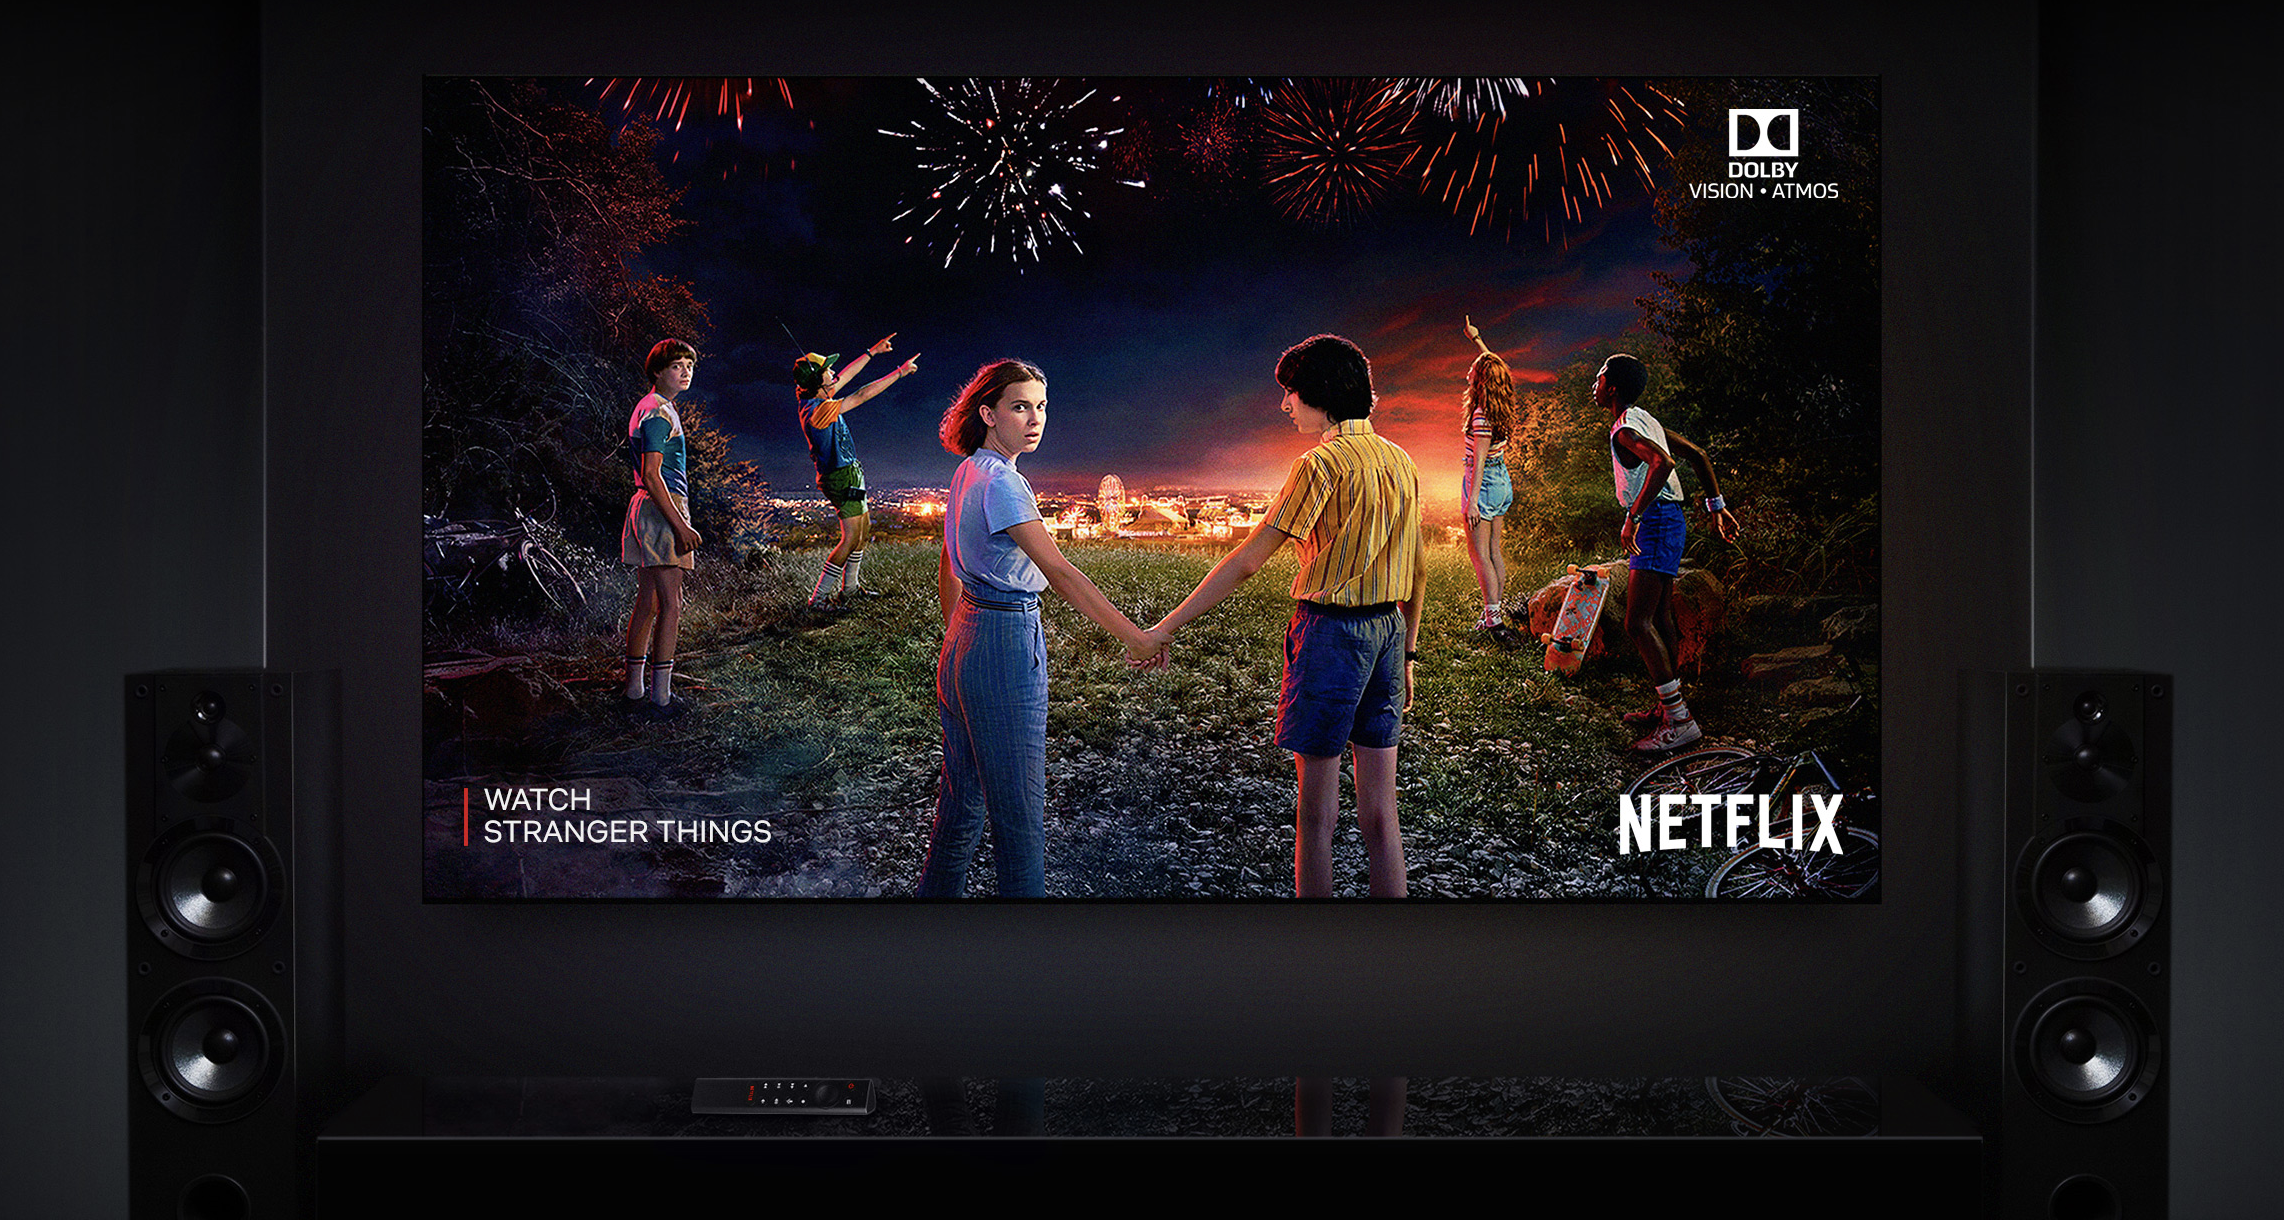 Watching Stranger Things on Netflix thanks to the Nvidia Shield TV Pro